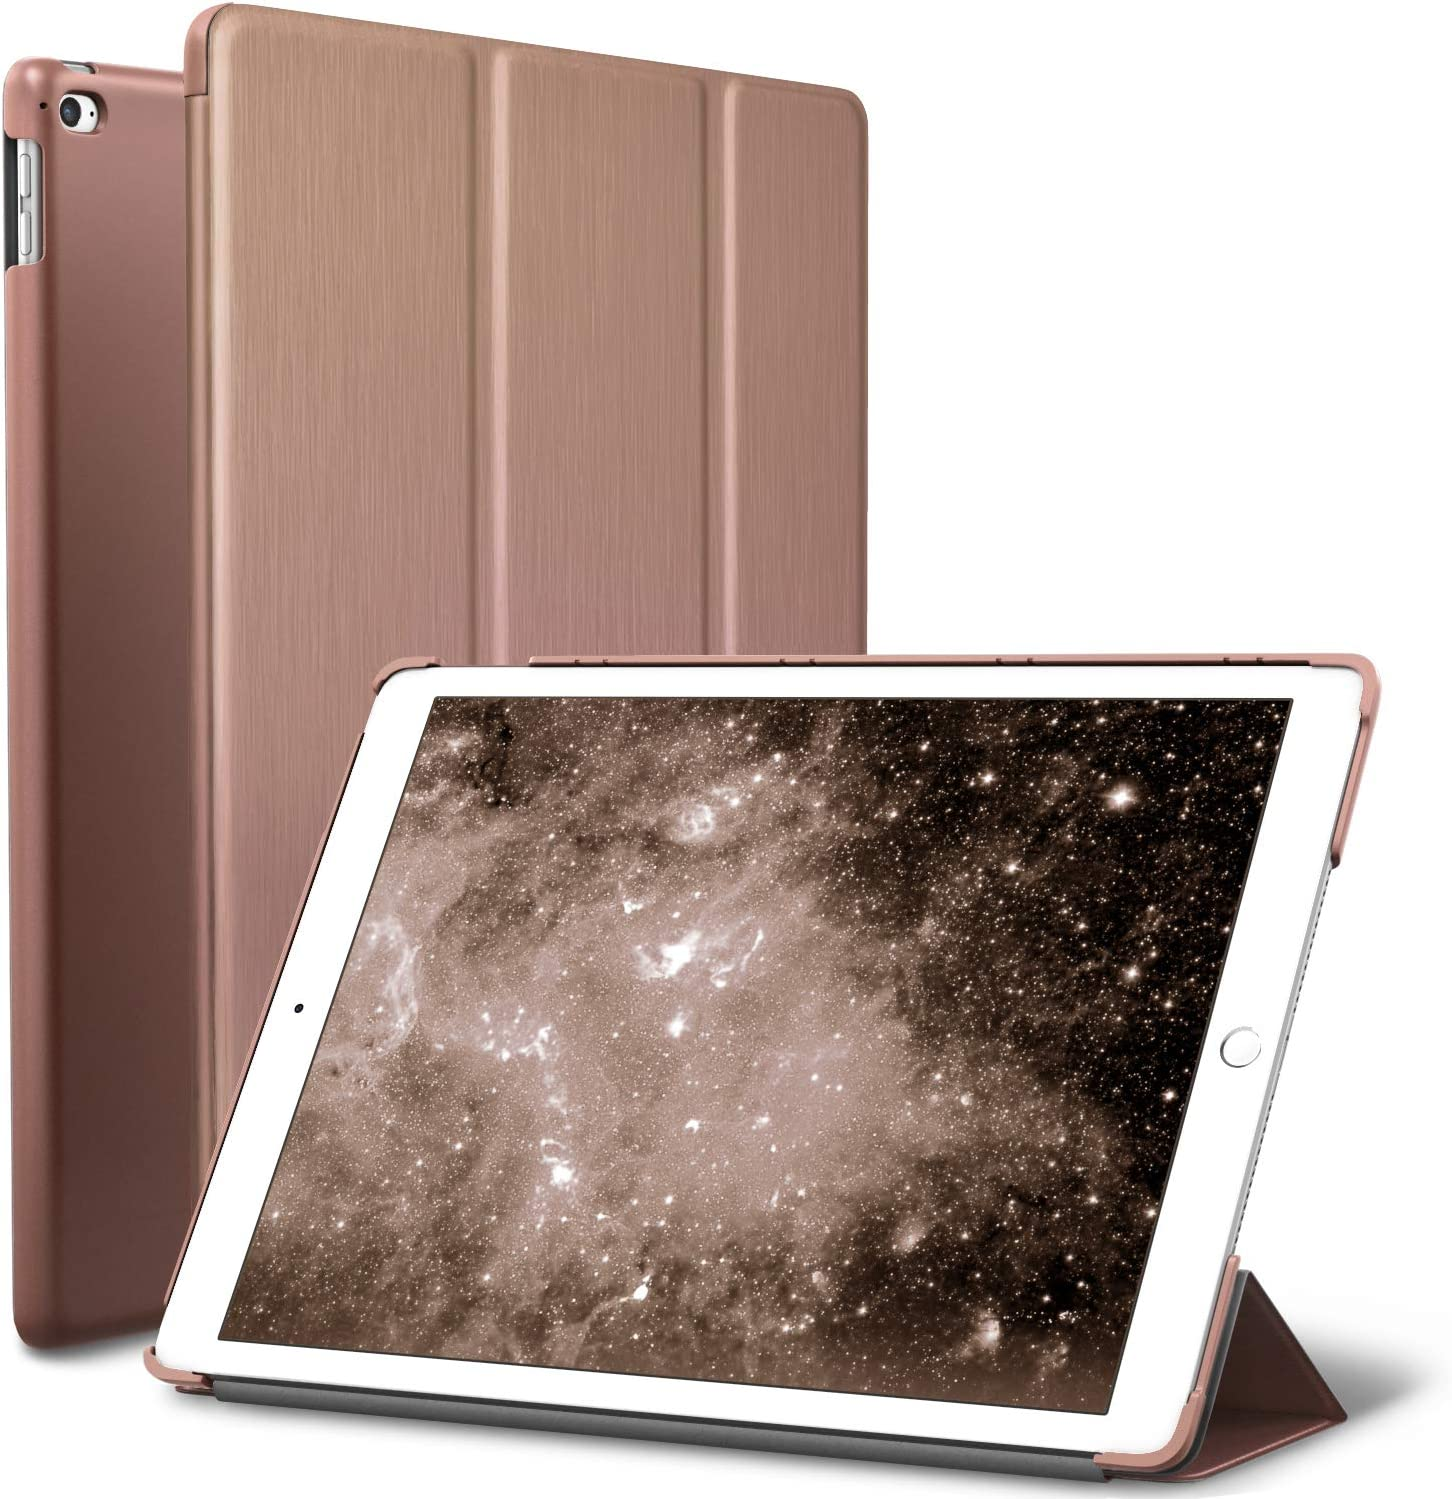 iPad Air 2 Case, ROARTZ Rose Gold Slim Fit Smart Rubber Coated Folio Case Hard Shell Cover Light-Weight Auto Wake/Sleep for Apple iPad Air 2nd Generation A1566/A1567 Retina Display